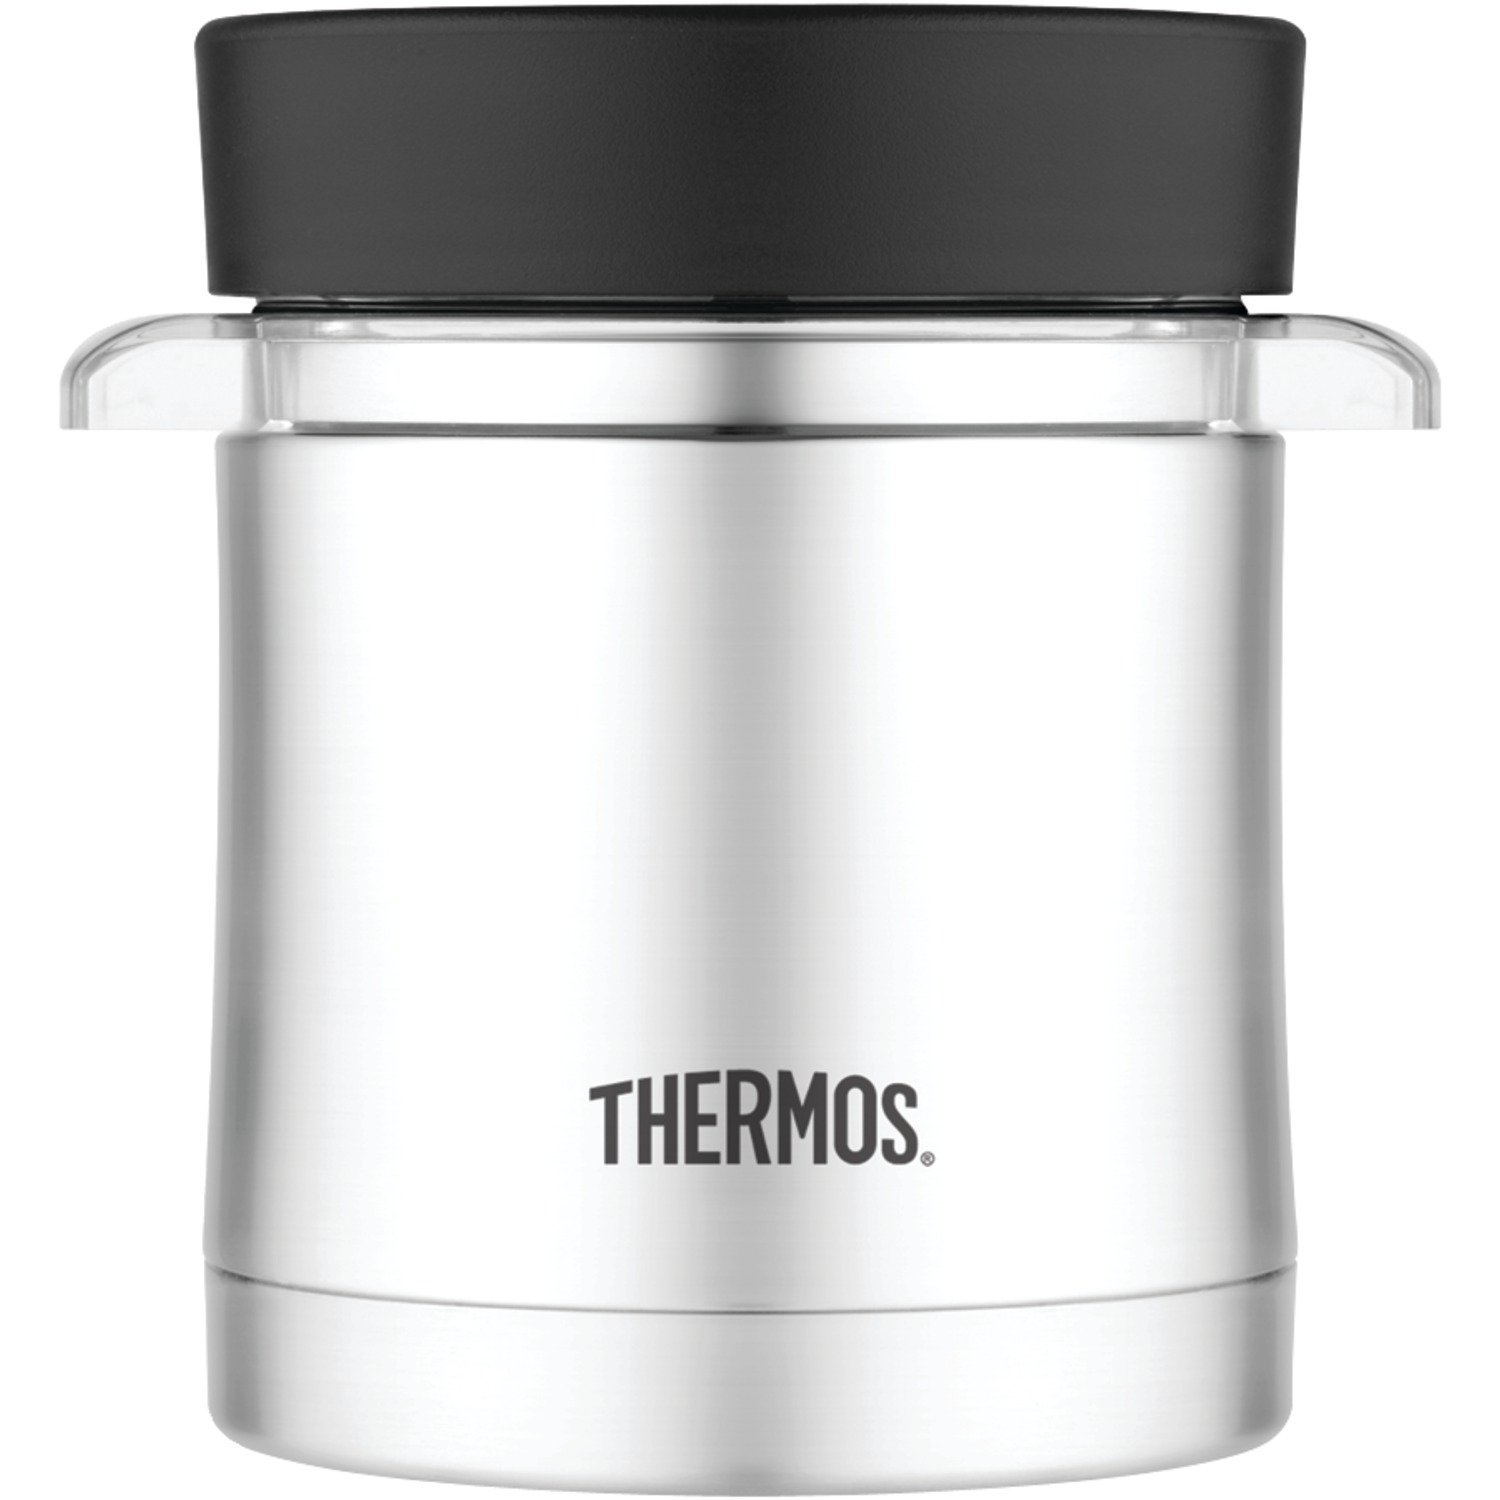 Nissan Thermos Food Jar with Microwavable Container, 12-O...